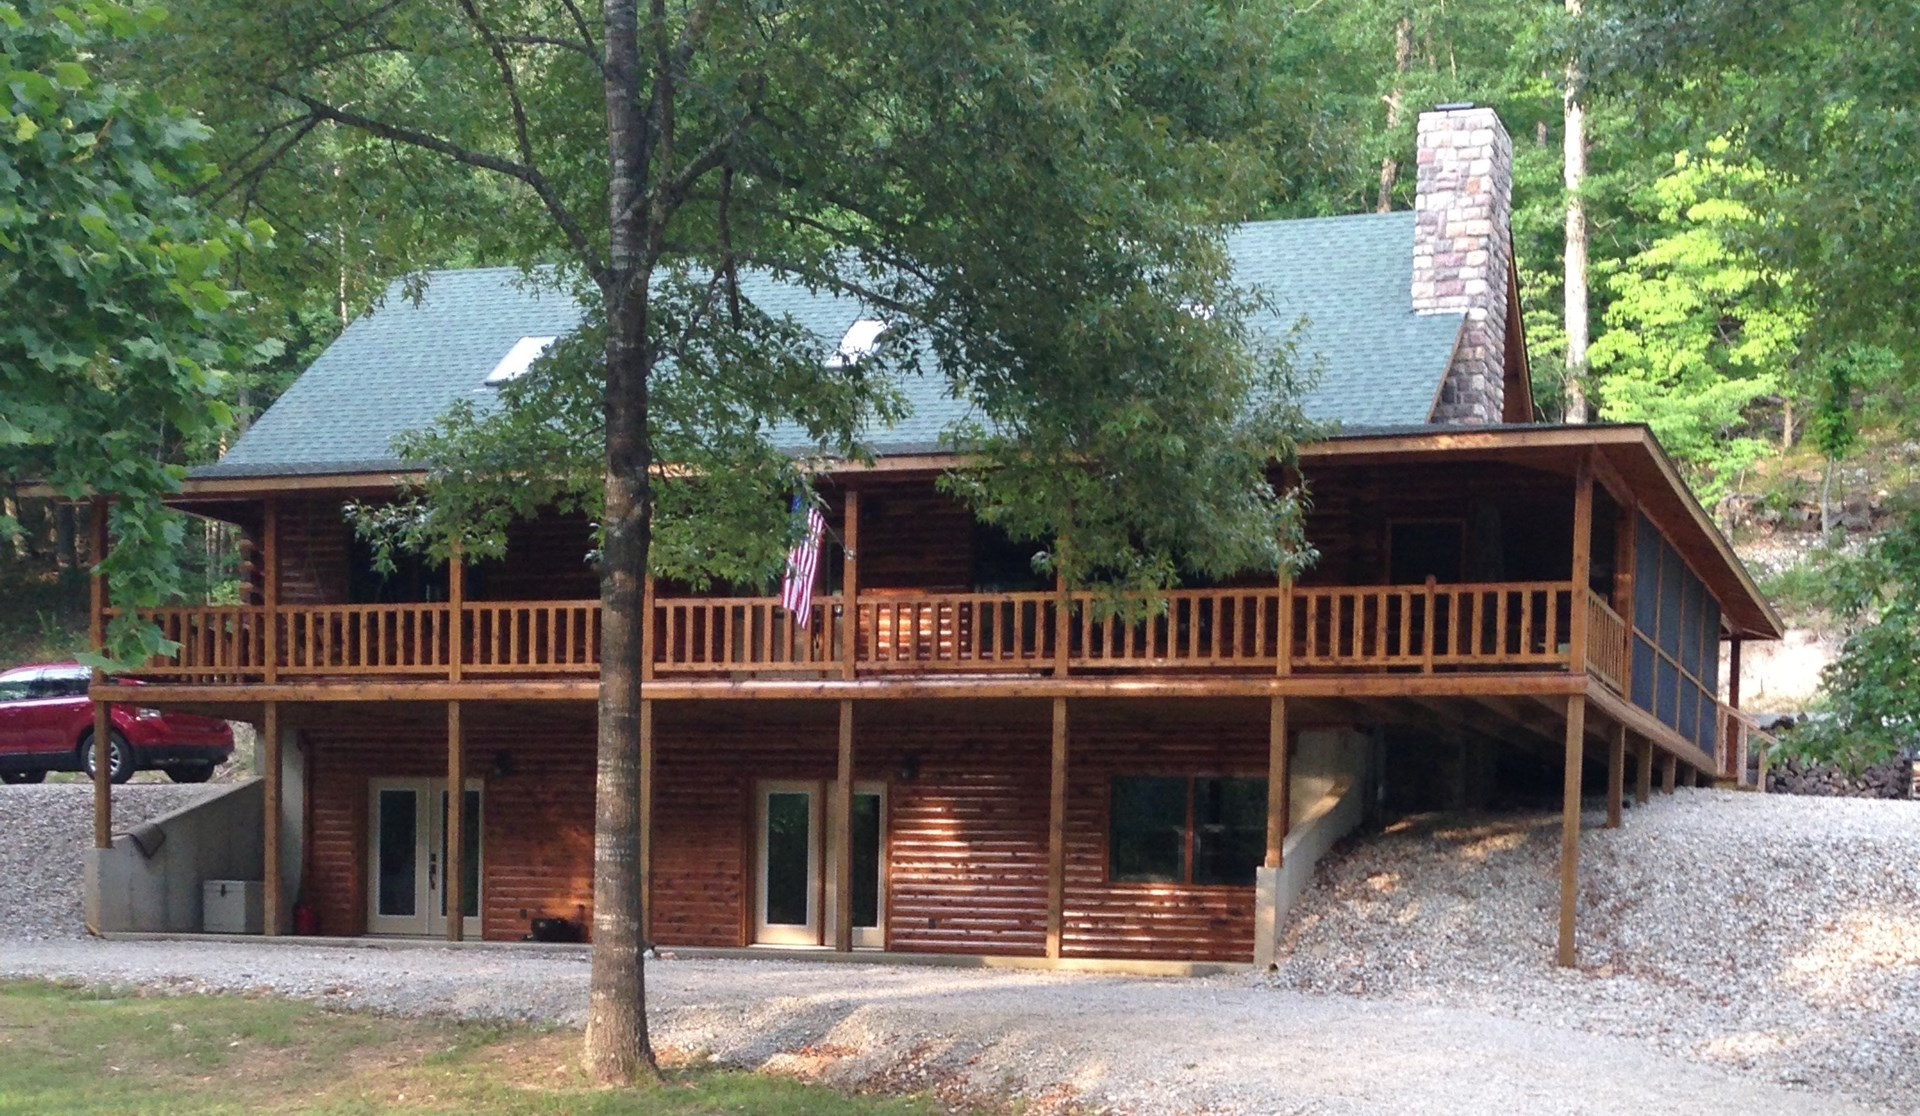 Log Home For Sale with River Access in Missouri Ozarks